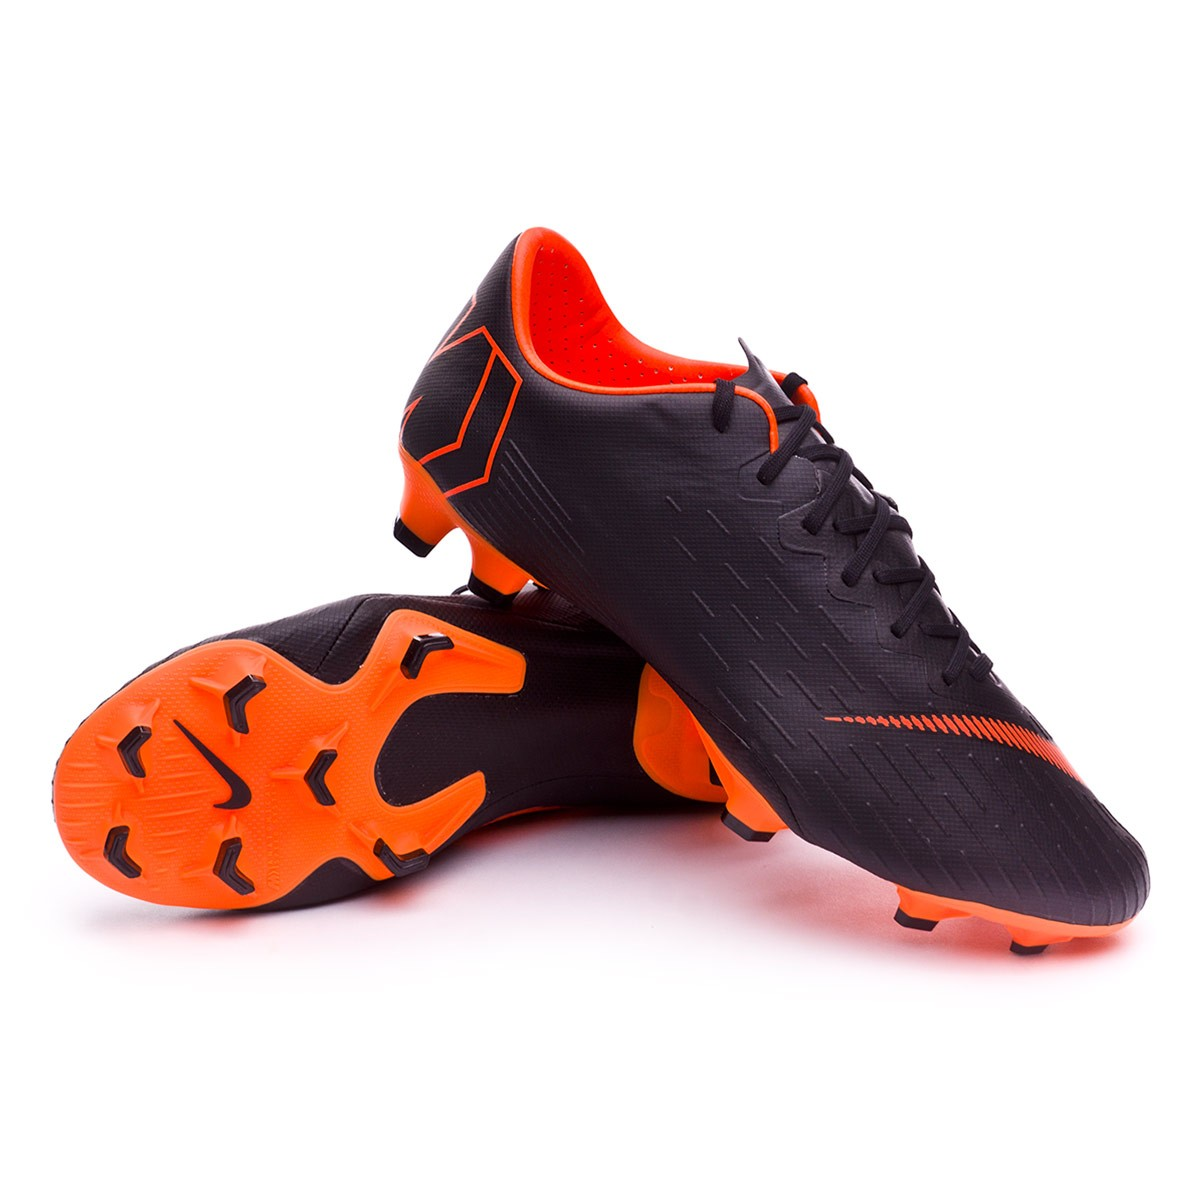 ... Bota Mercurial Vapor XII Pro FG Black-Total orange-White. CATEGORIA.  Chuteiras de futebol · Nike e890803349922